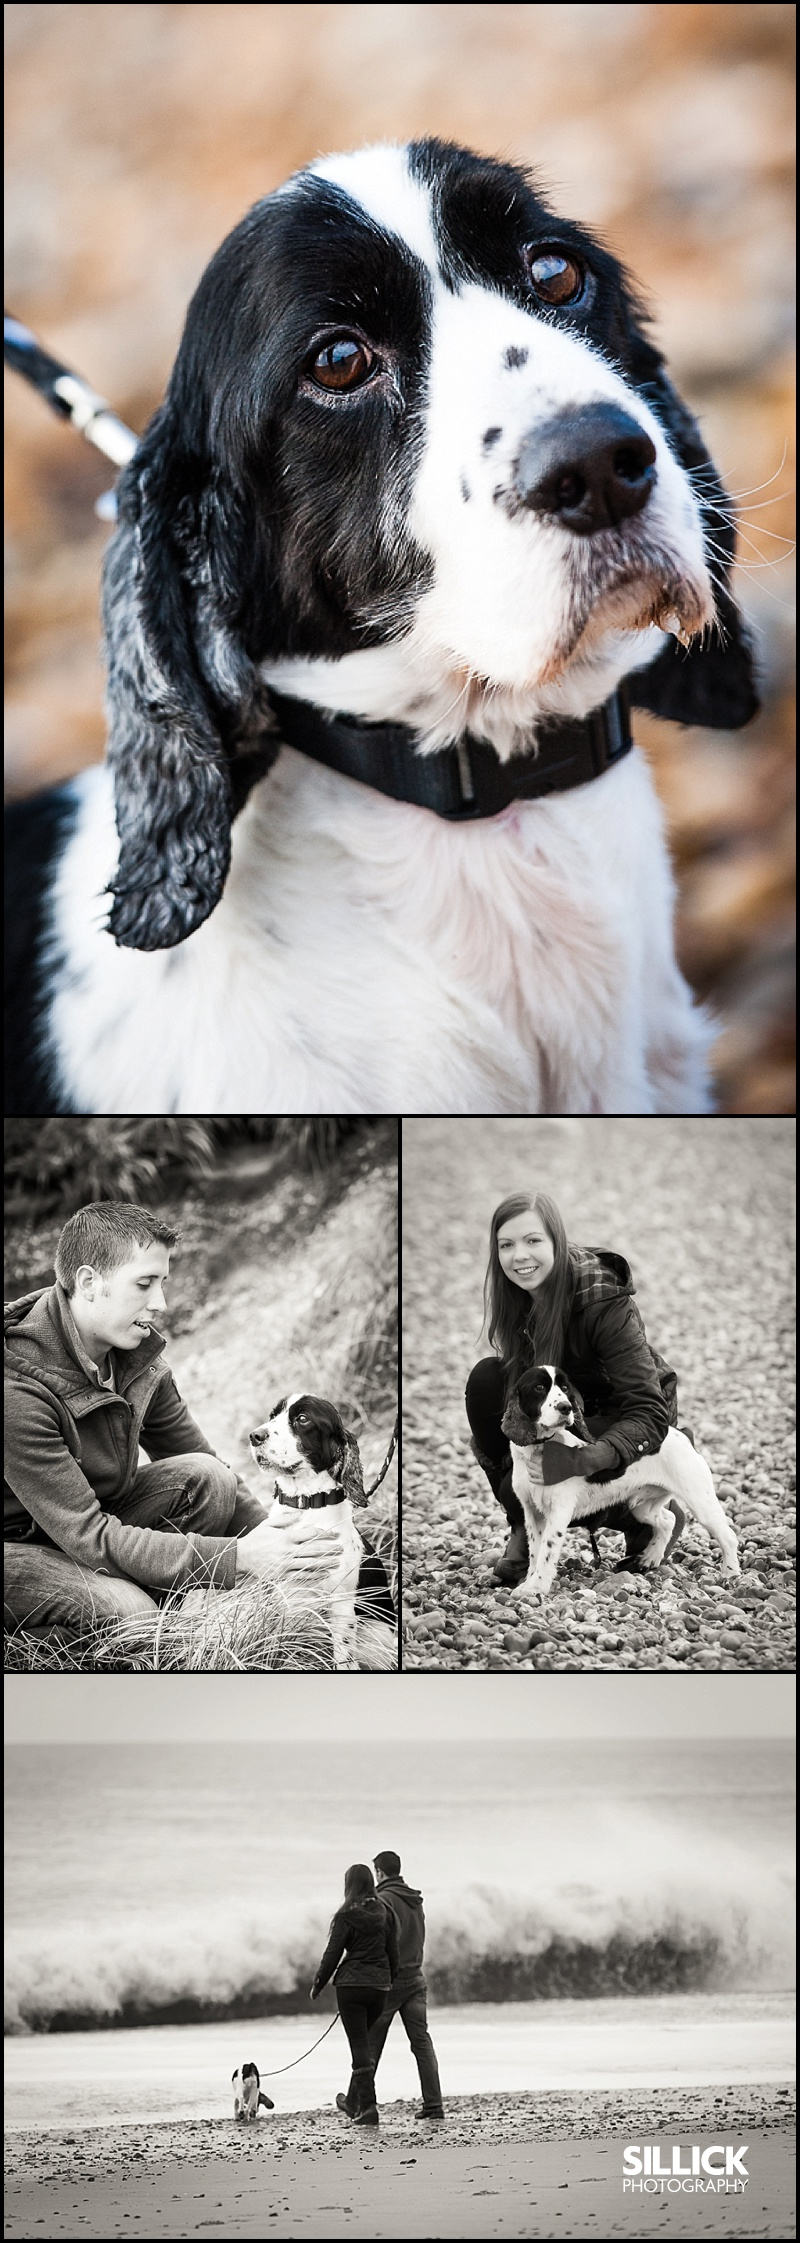 Kayley & Stephen, Hengistbury portrait session, Sillick Photography